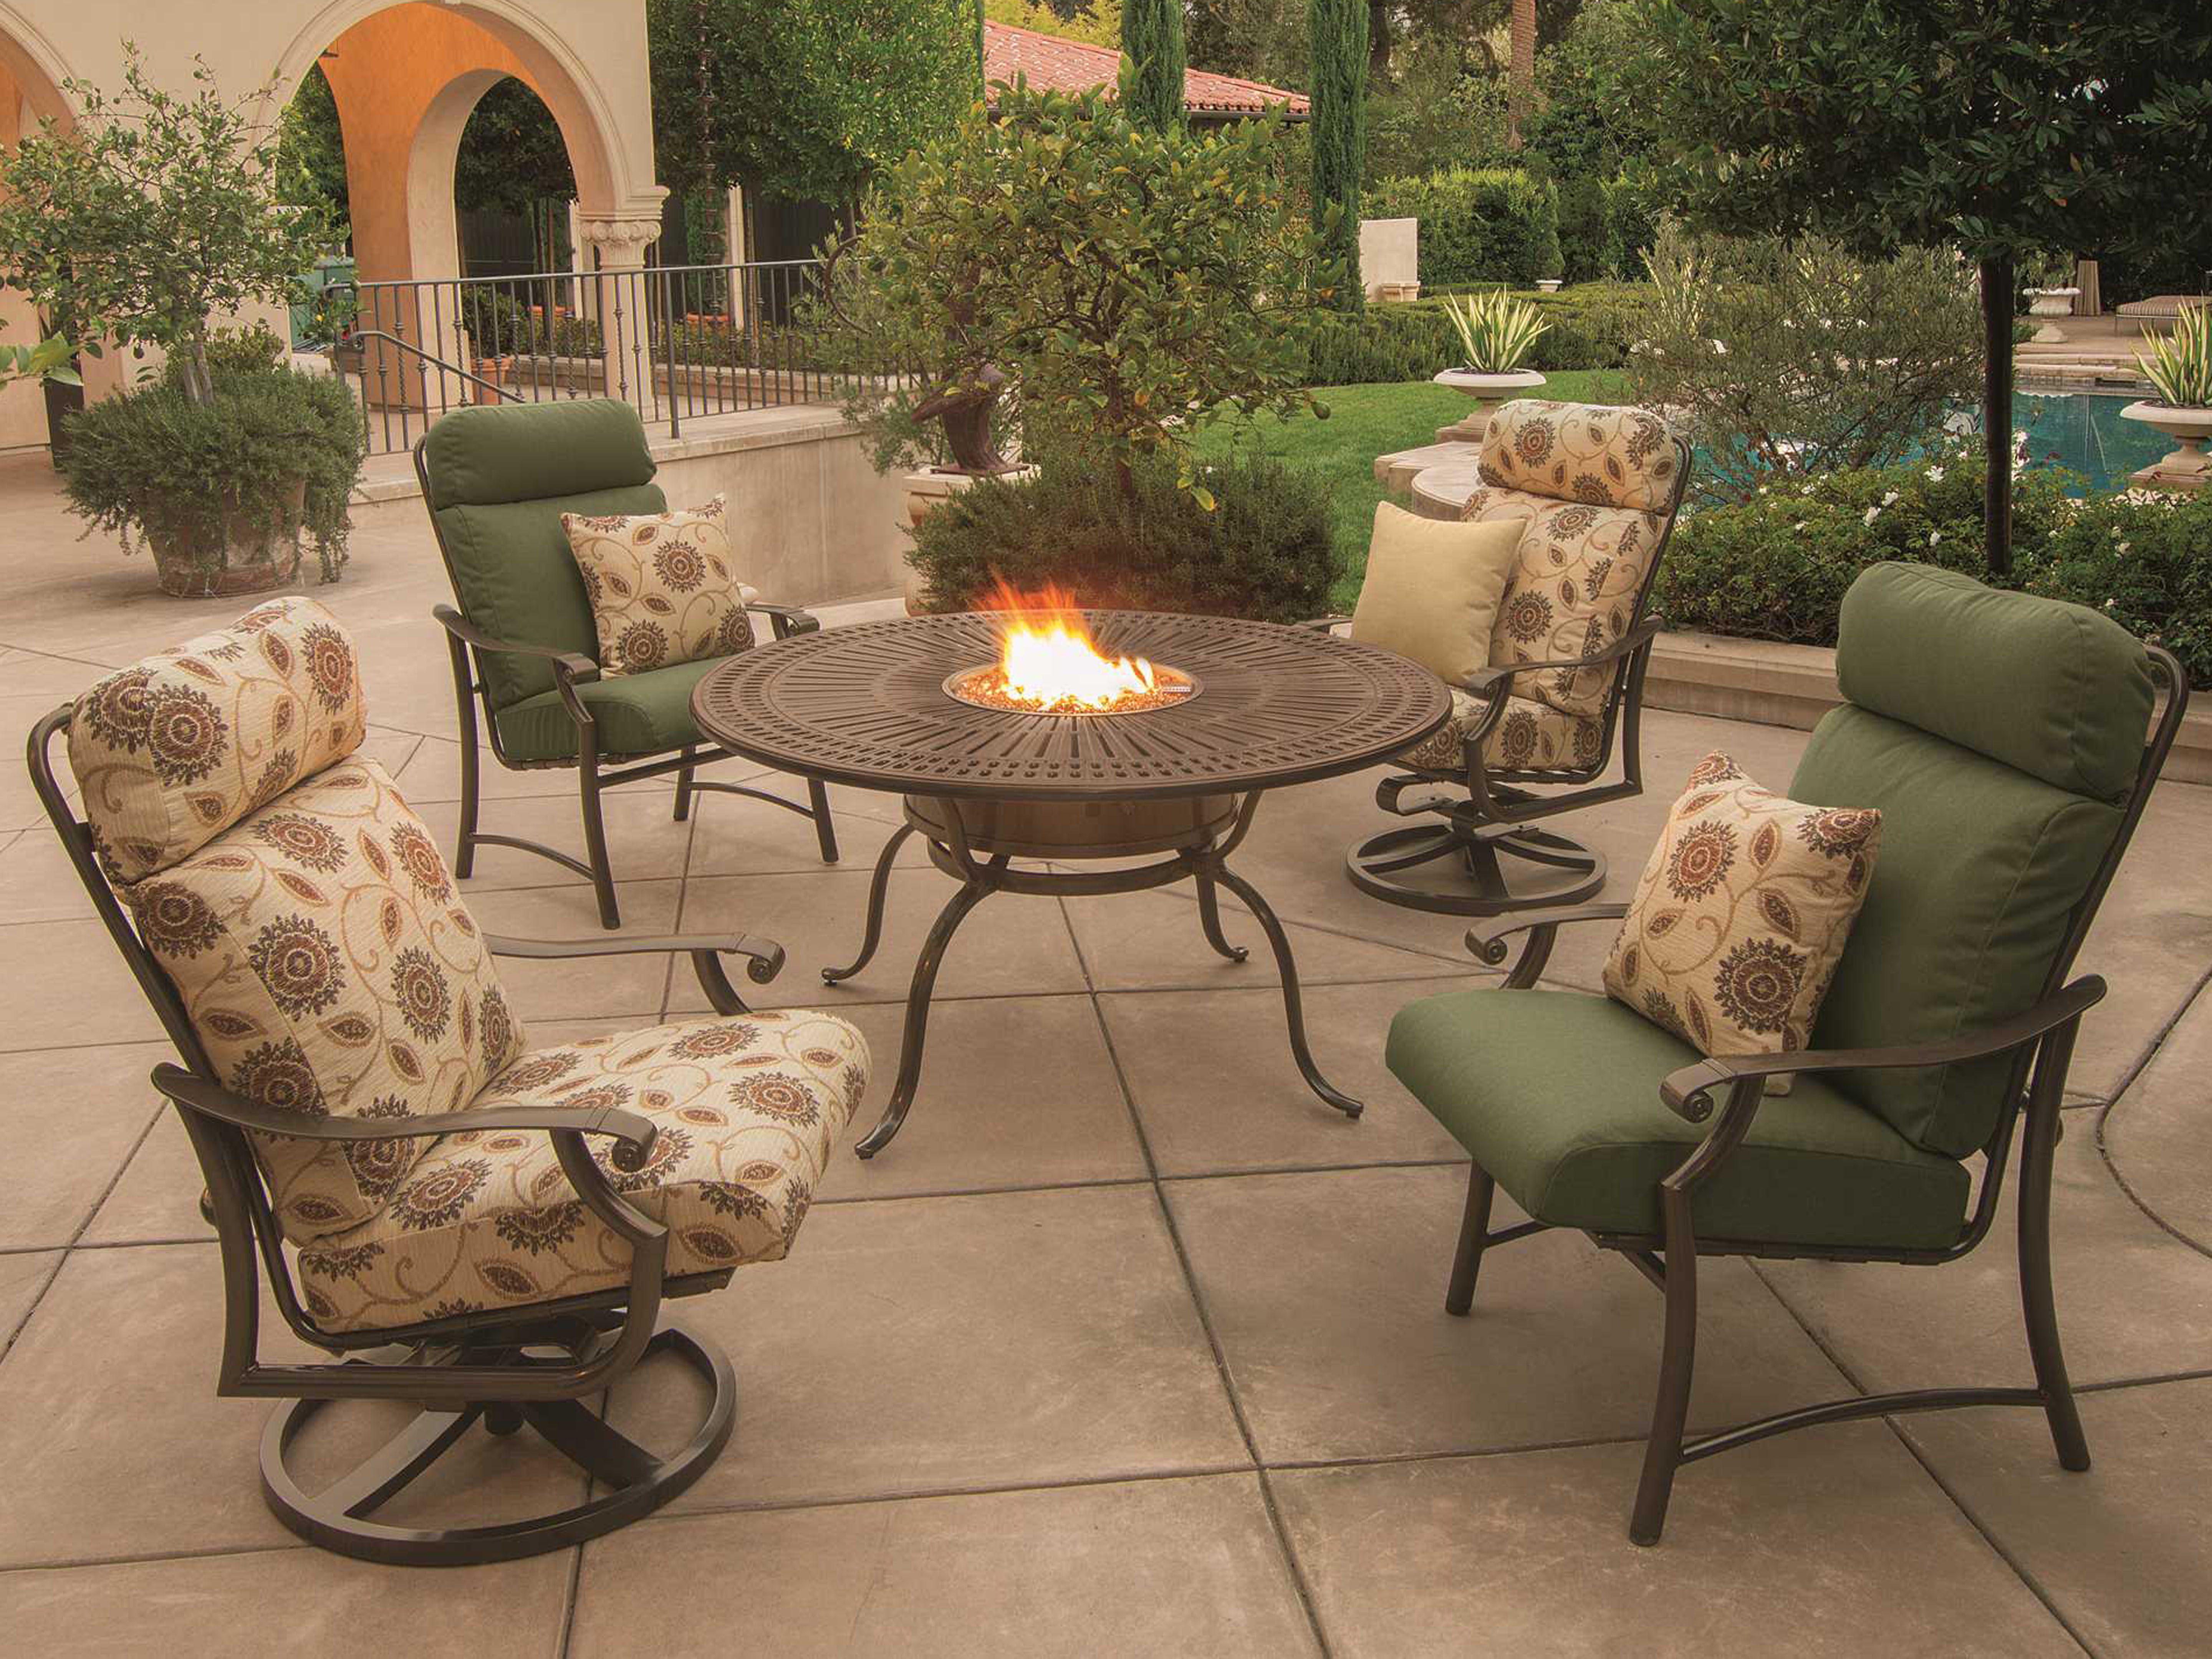 Save Big On Rugs Fire Pits More: Tropitone Spectrum Aluminum 55 Round Fire Pit Table